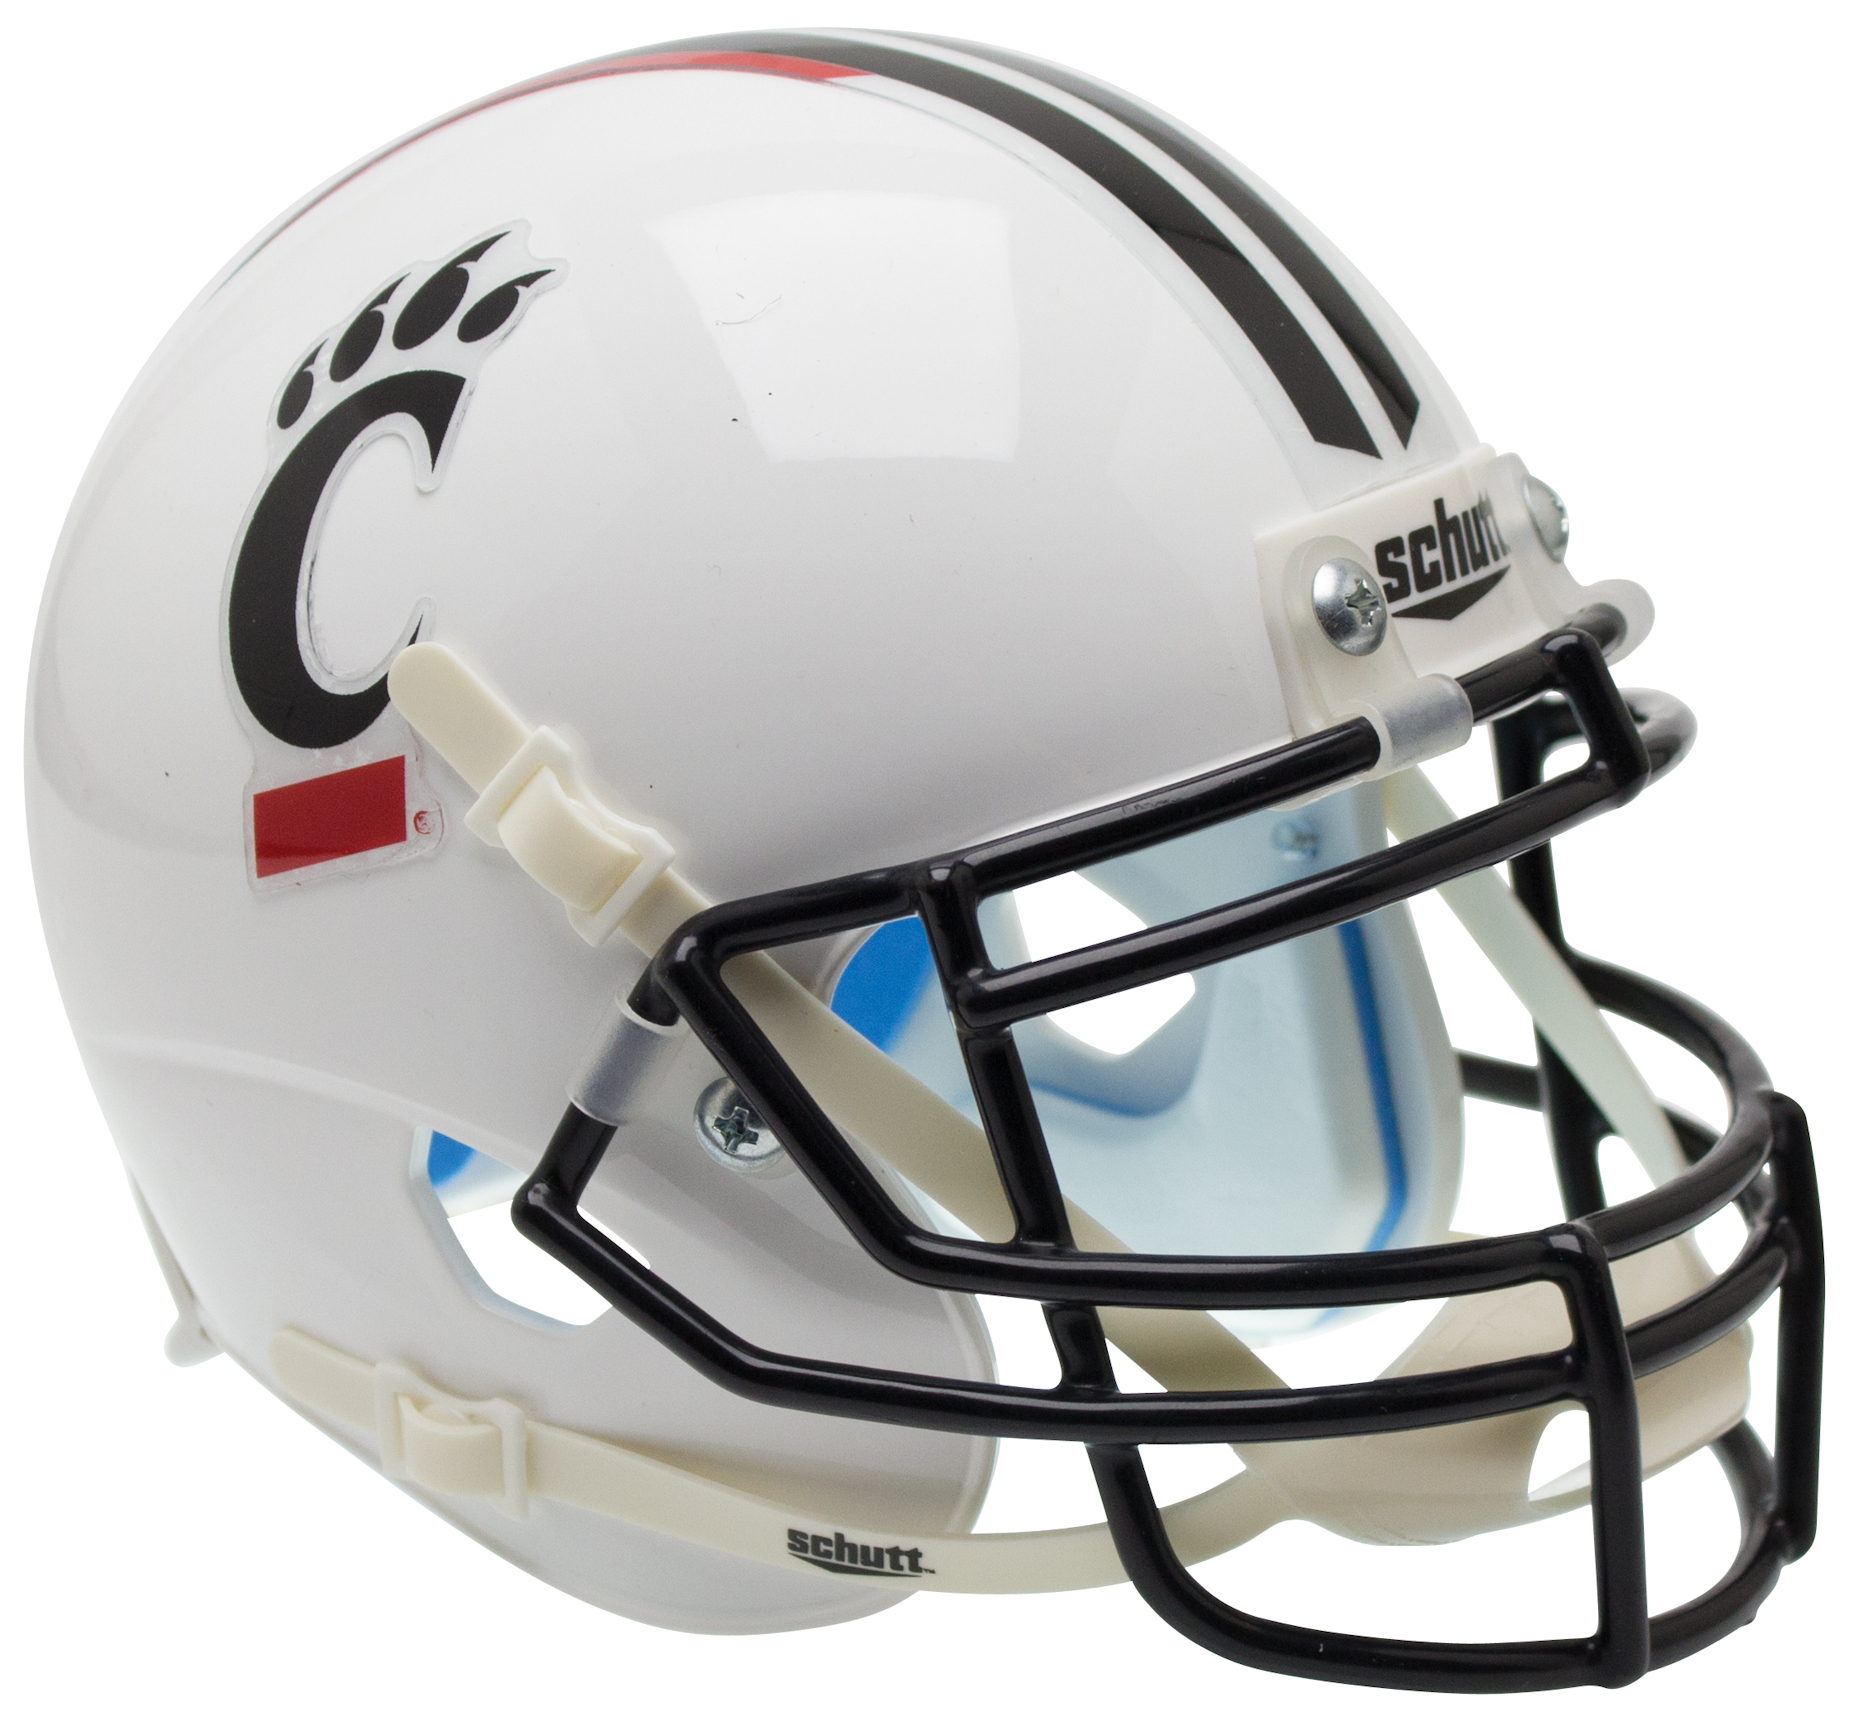 Cincinnati Bearcats Authentic College XP Football Helmet Schutt <B>Matte White</B>